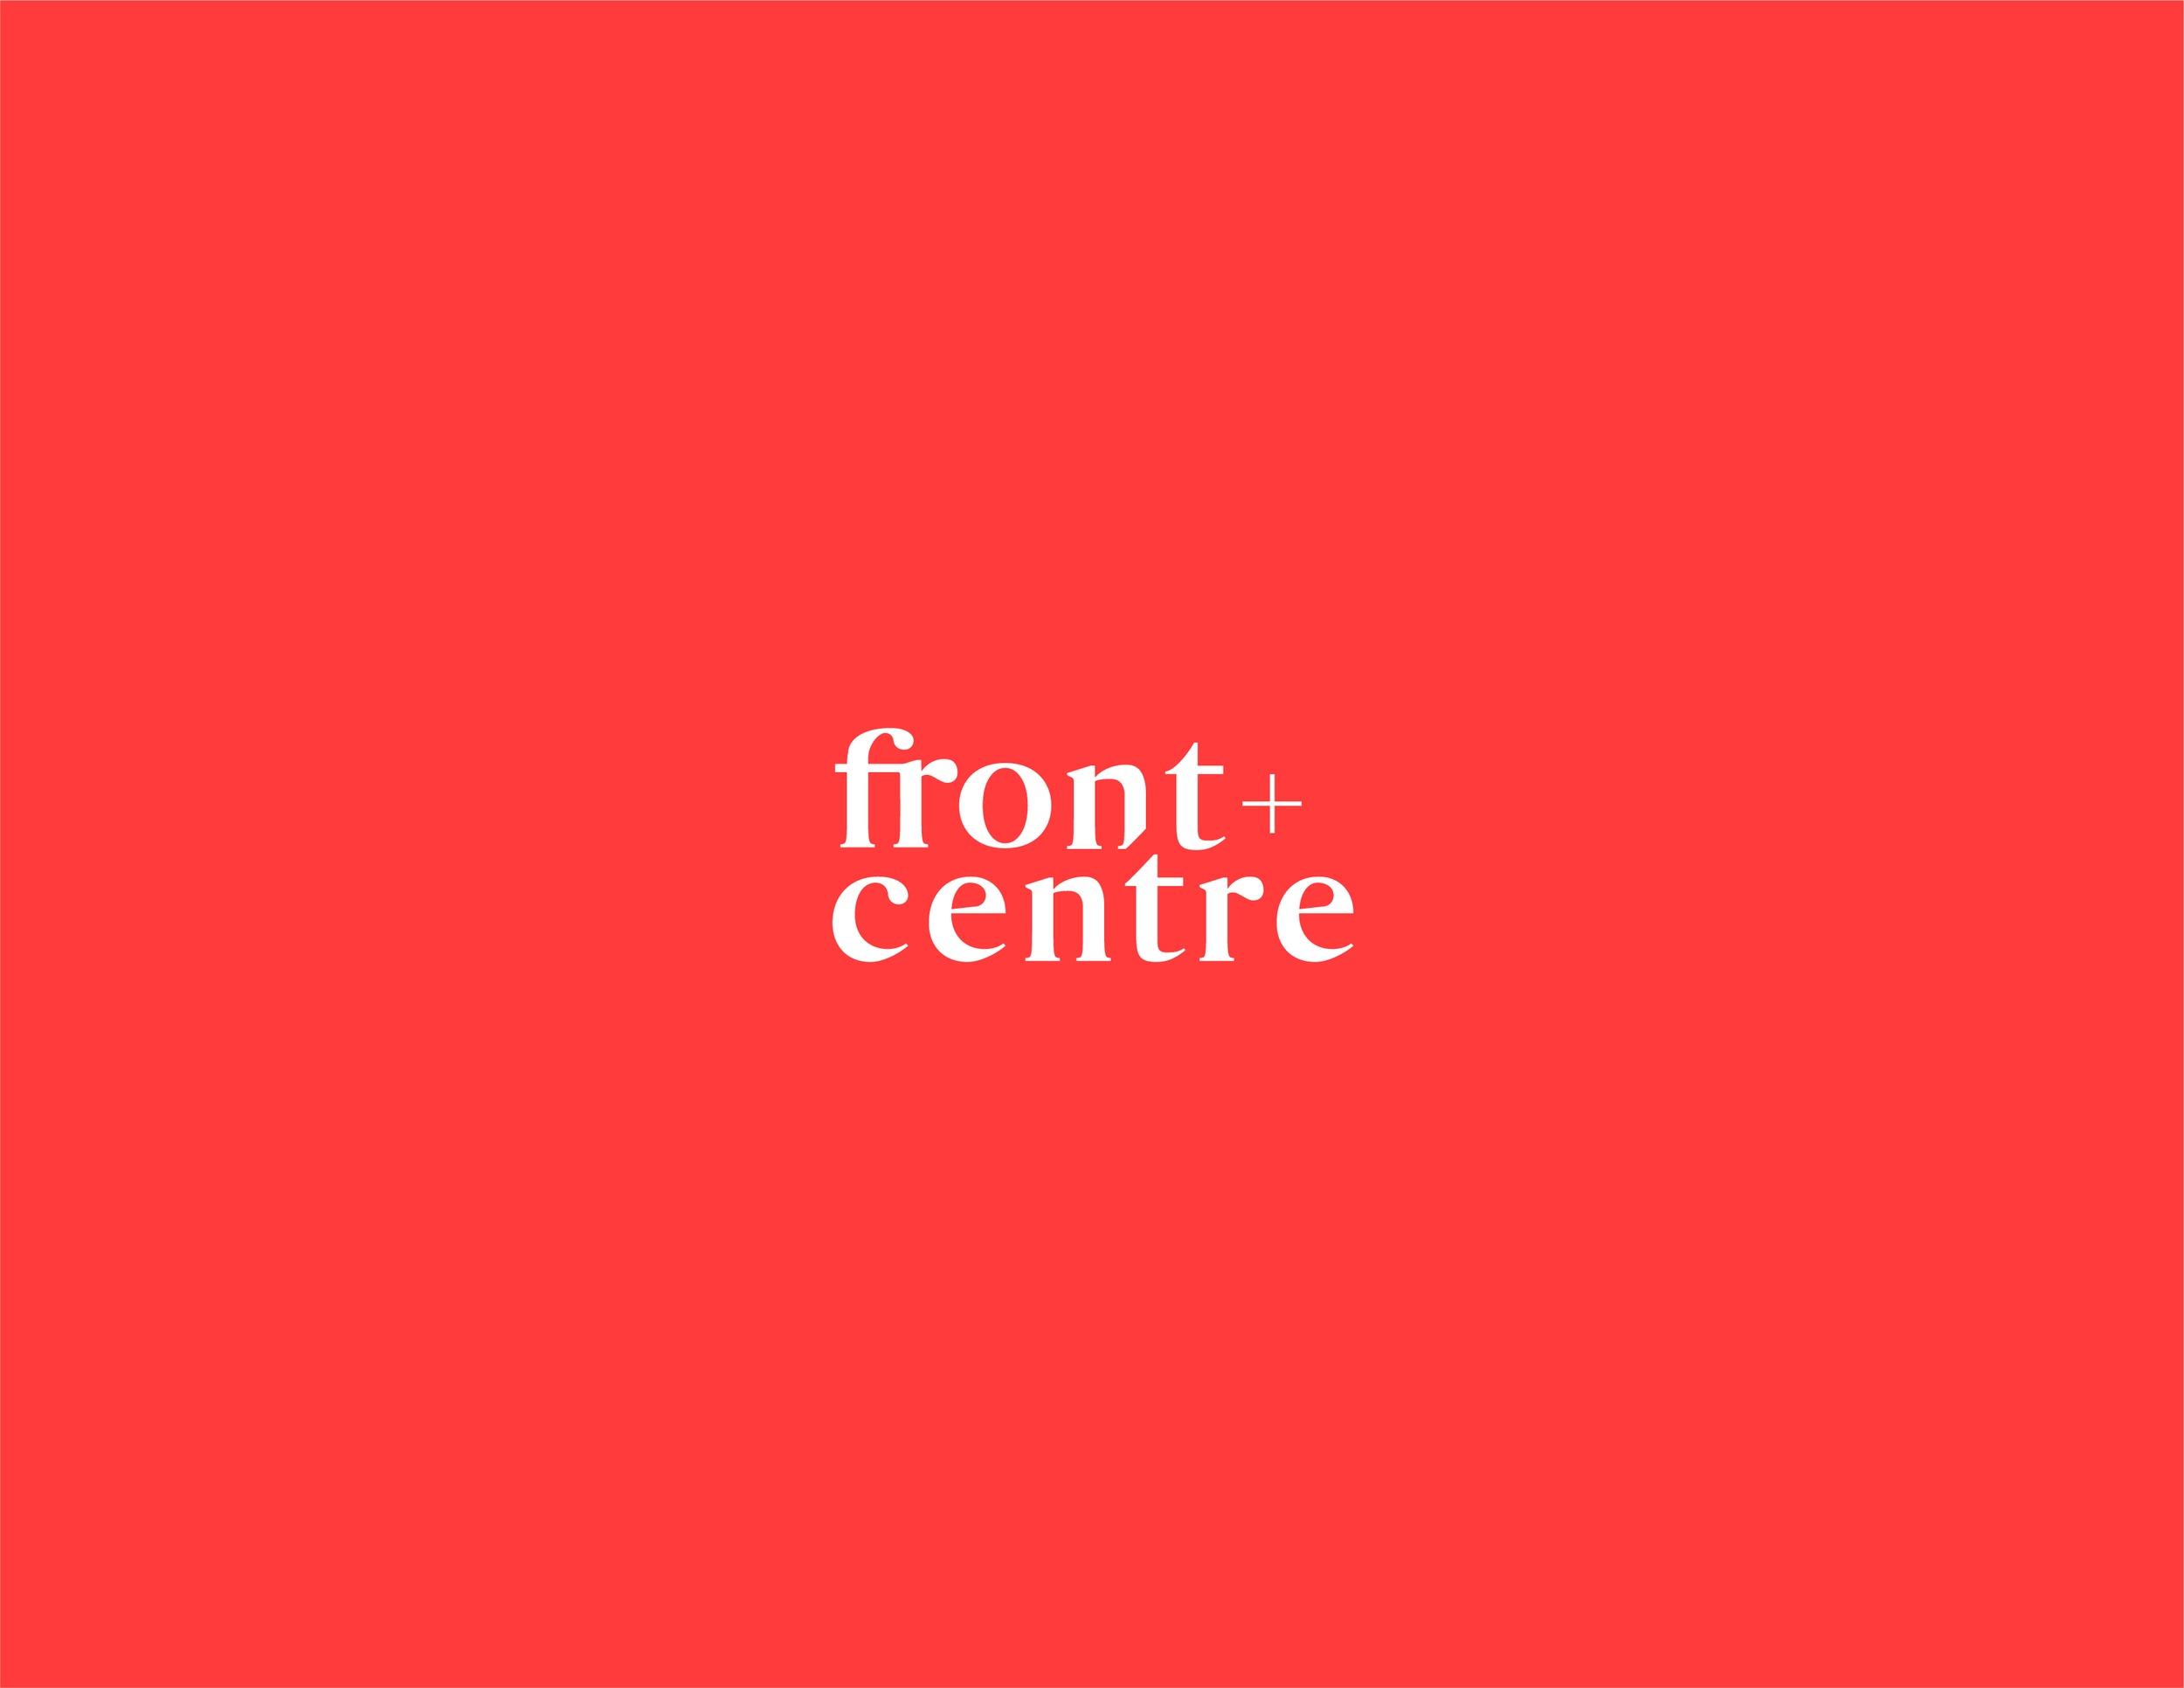 Front + Centre logo in white on a bright red (papaya) background